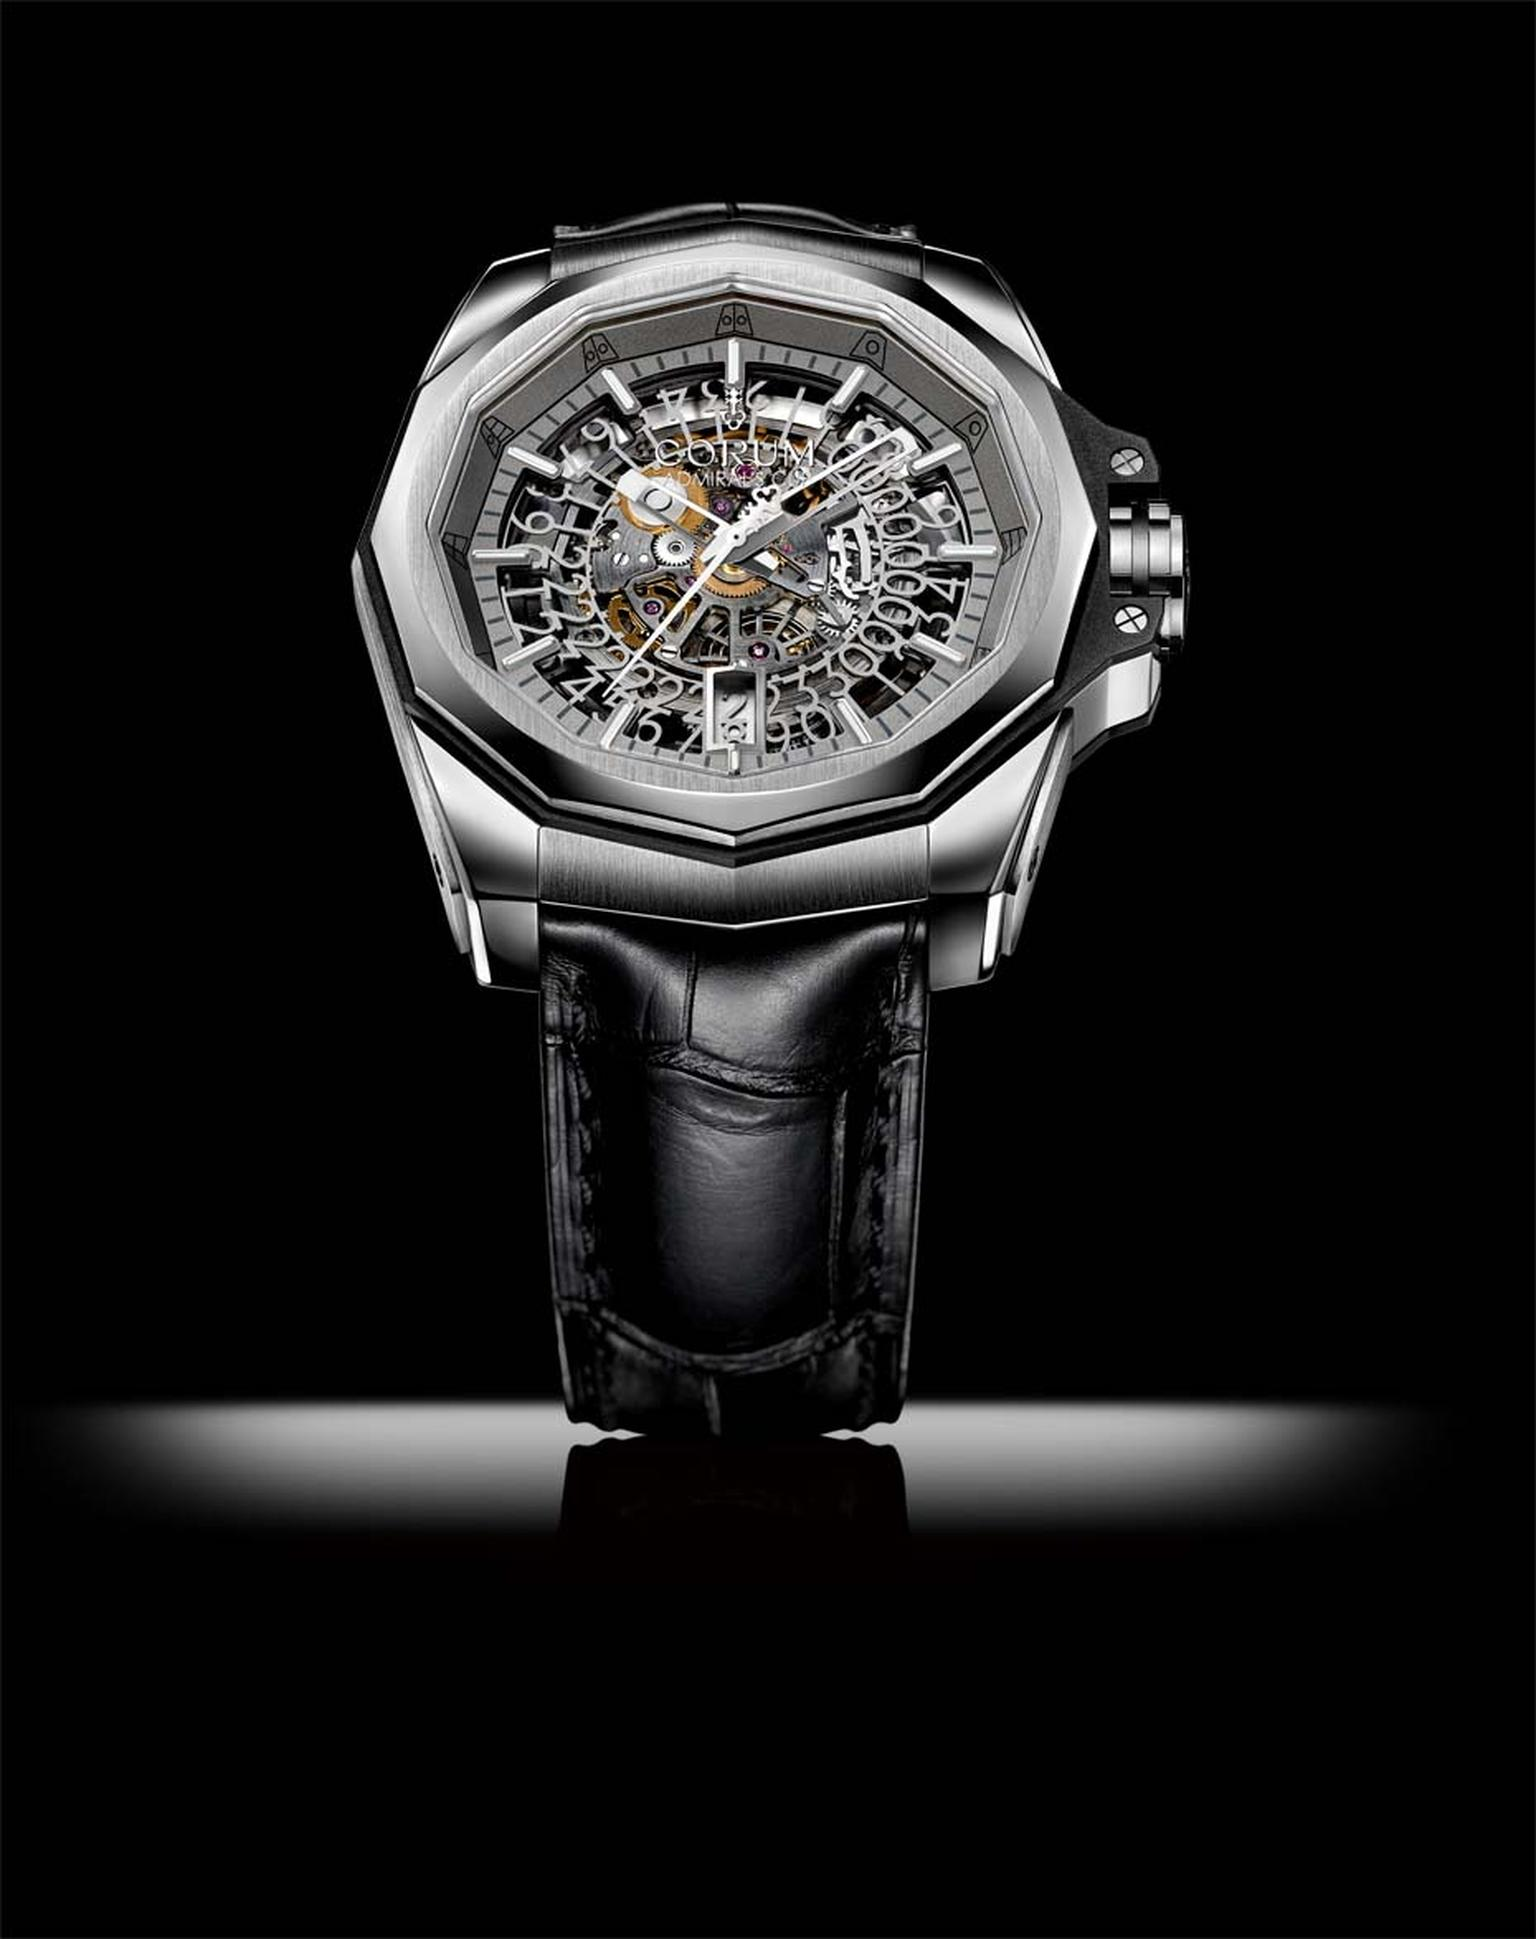 Corum's Admiral's Cup AC-One 45 Squelette watch is a marvel of filigreed metal with a large transparent date disc to best reveal the intricate gear trains